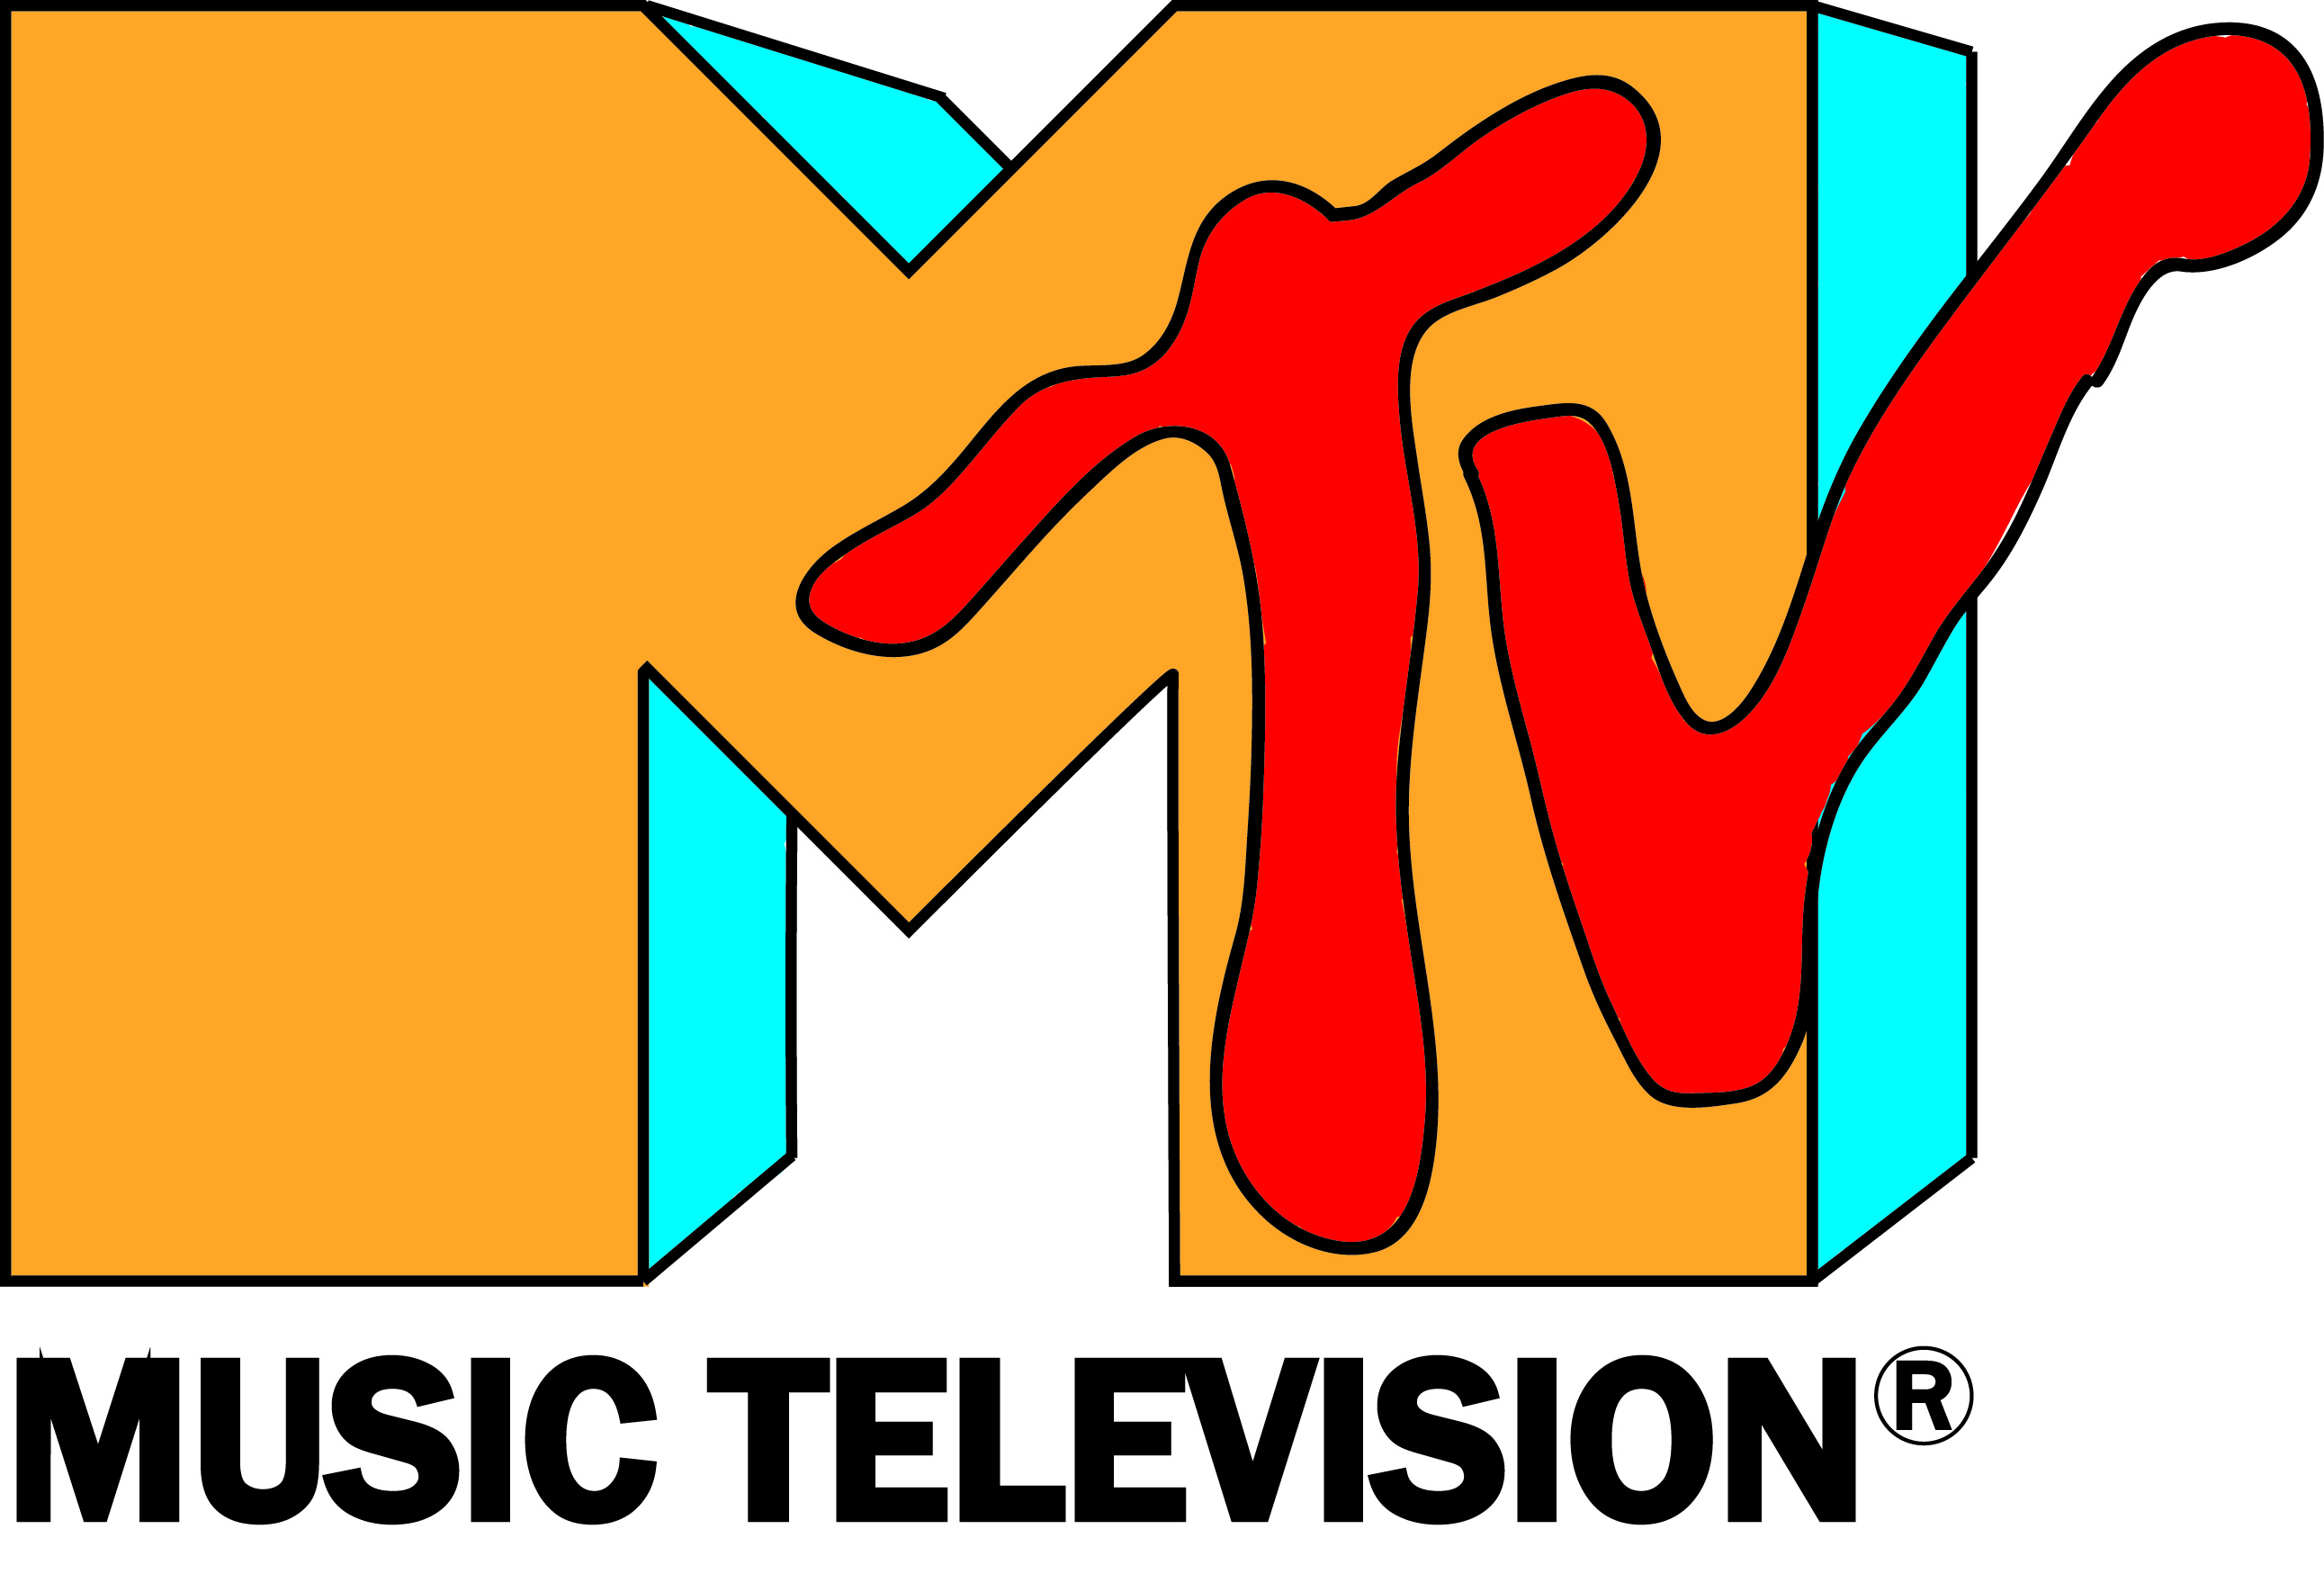 Mtv logo Wallpaper